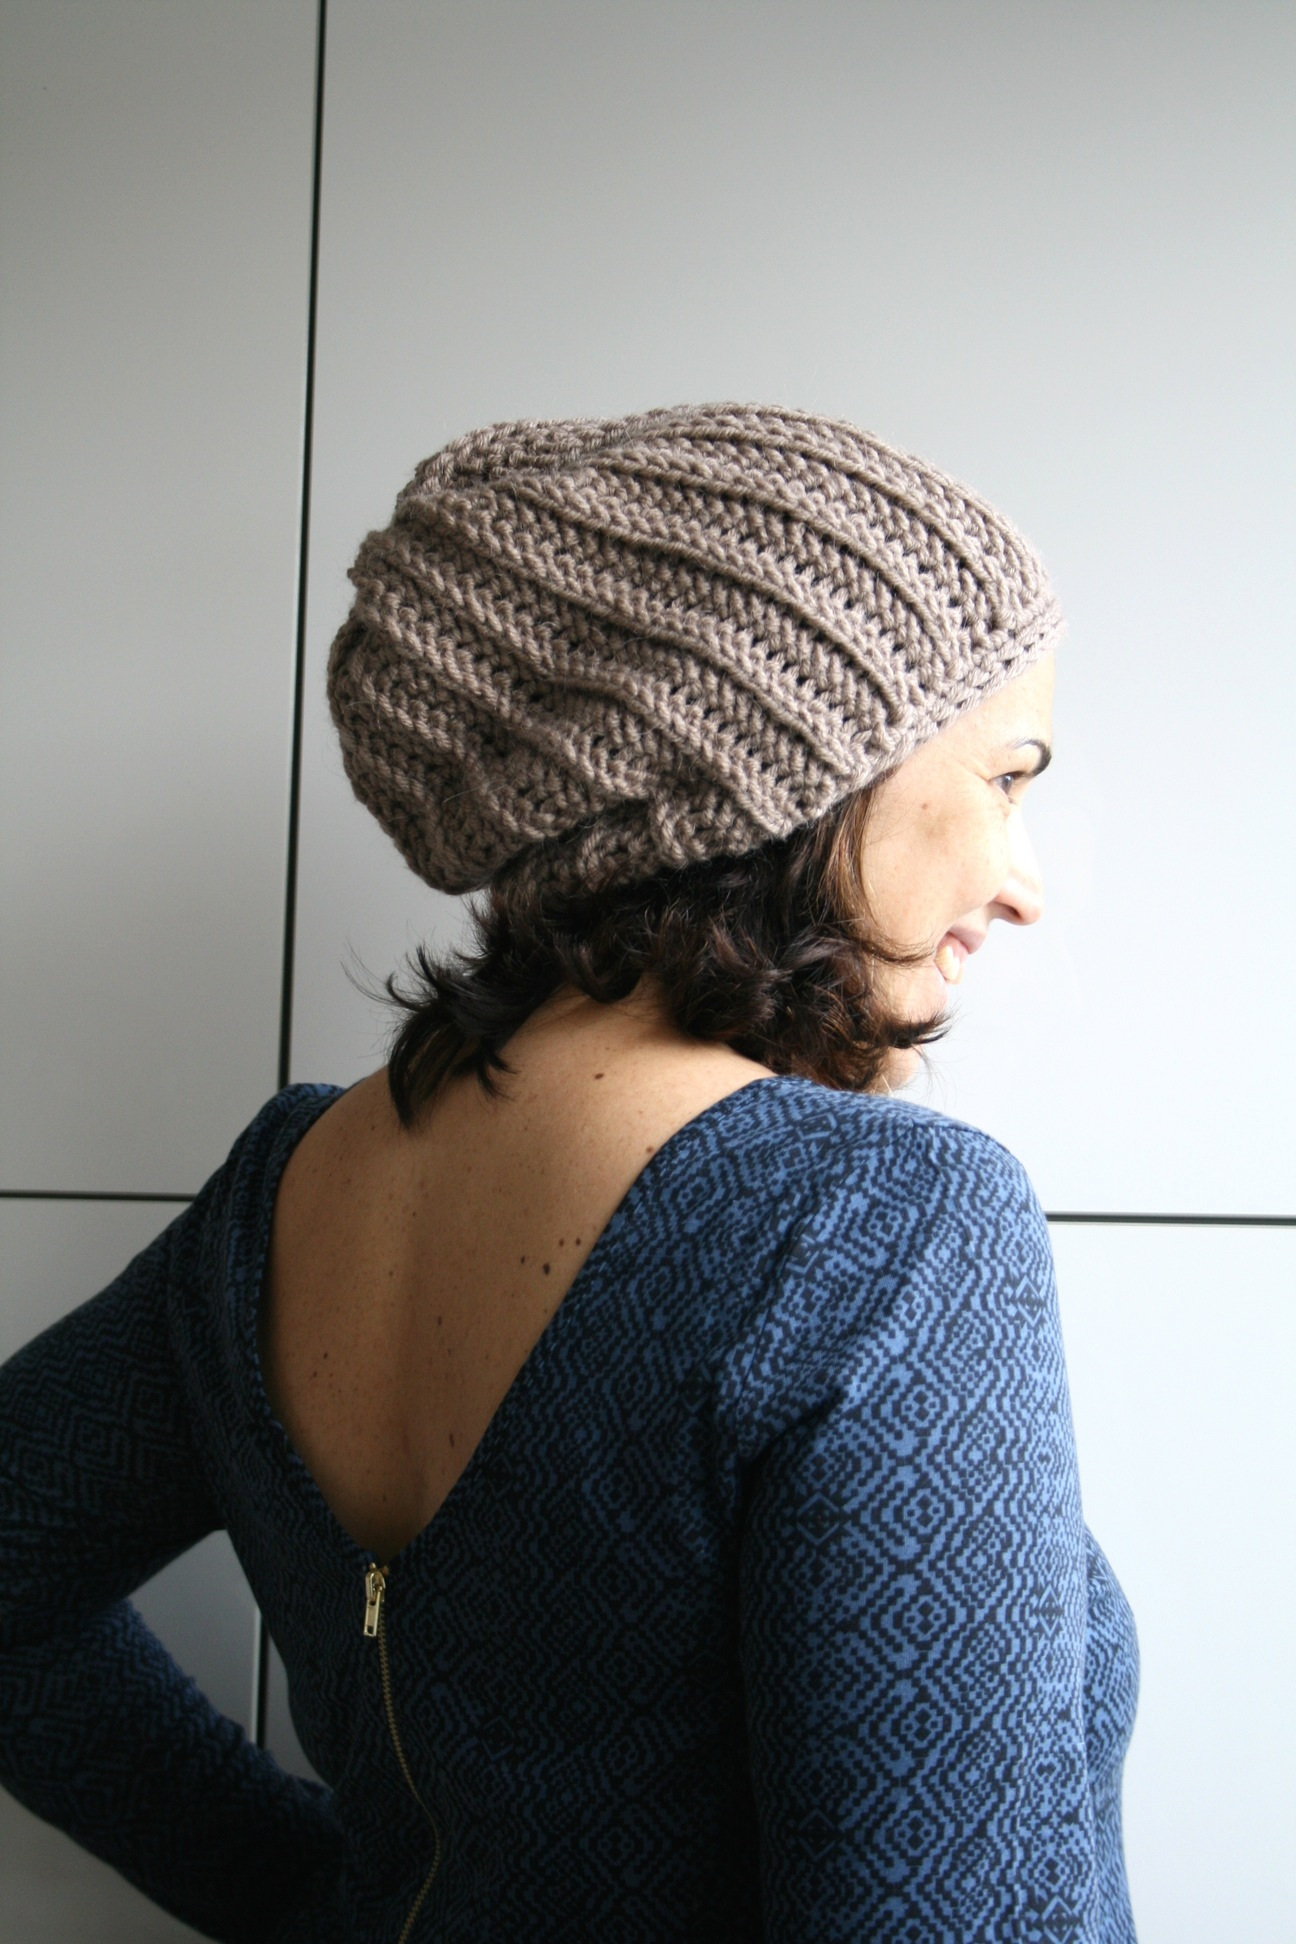 Knitting Or Crocheting Faster : Slouchy beanie crochet pattern archives luz patterns